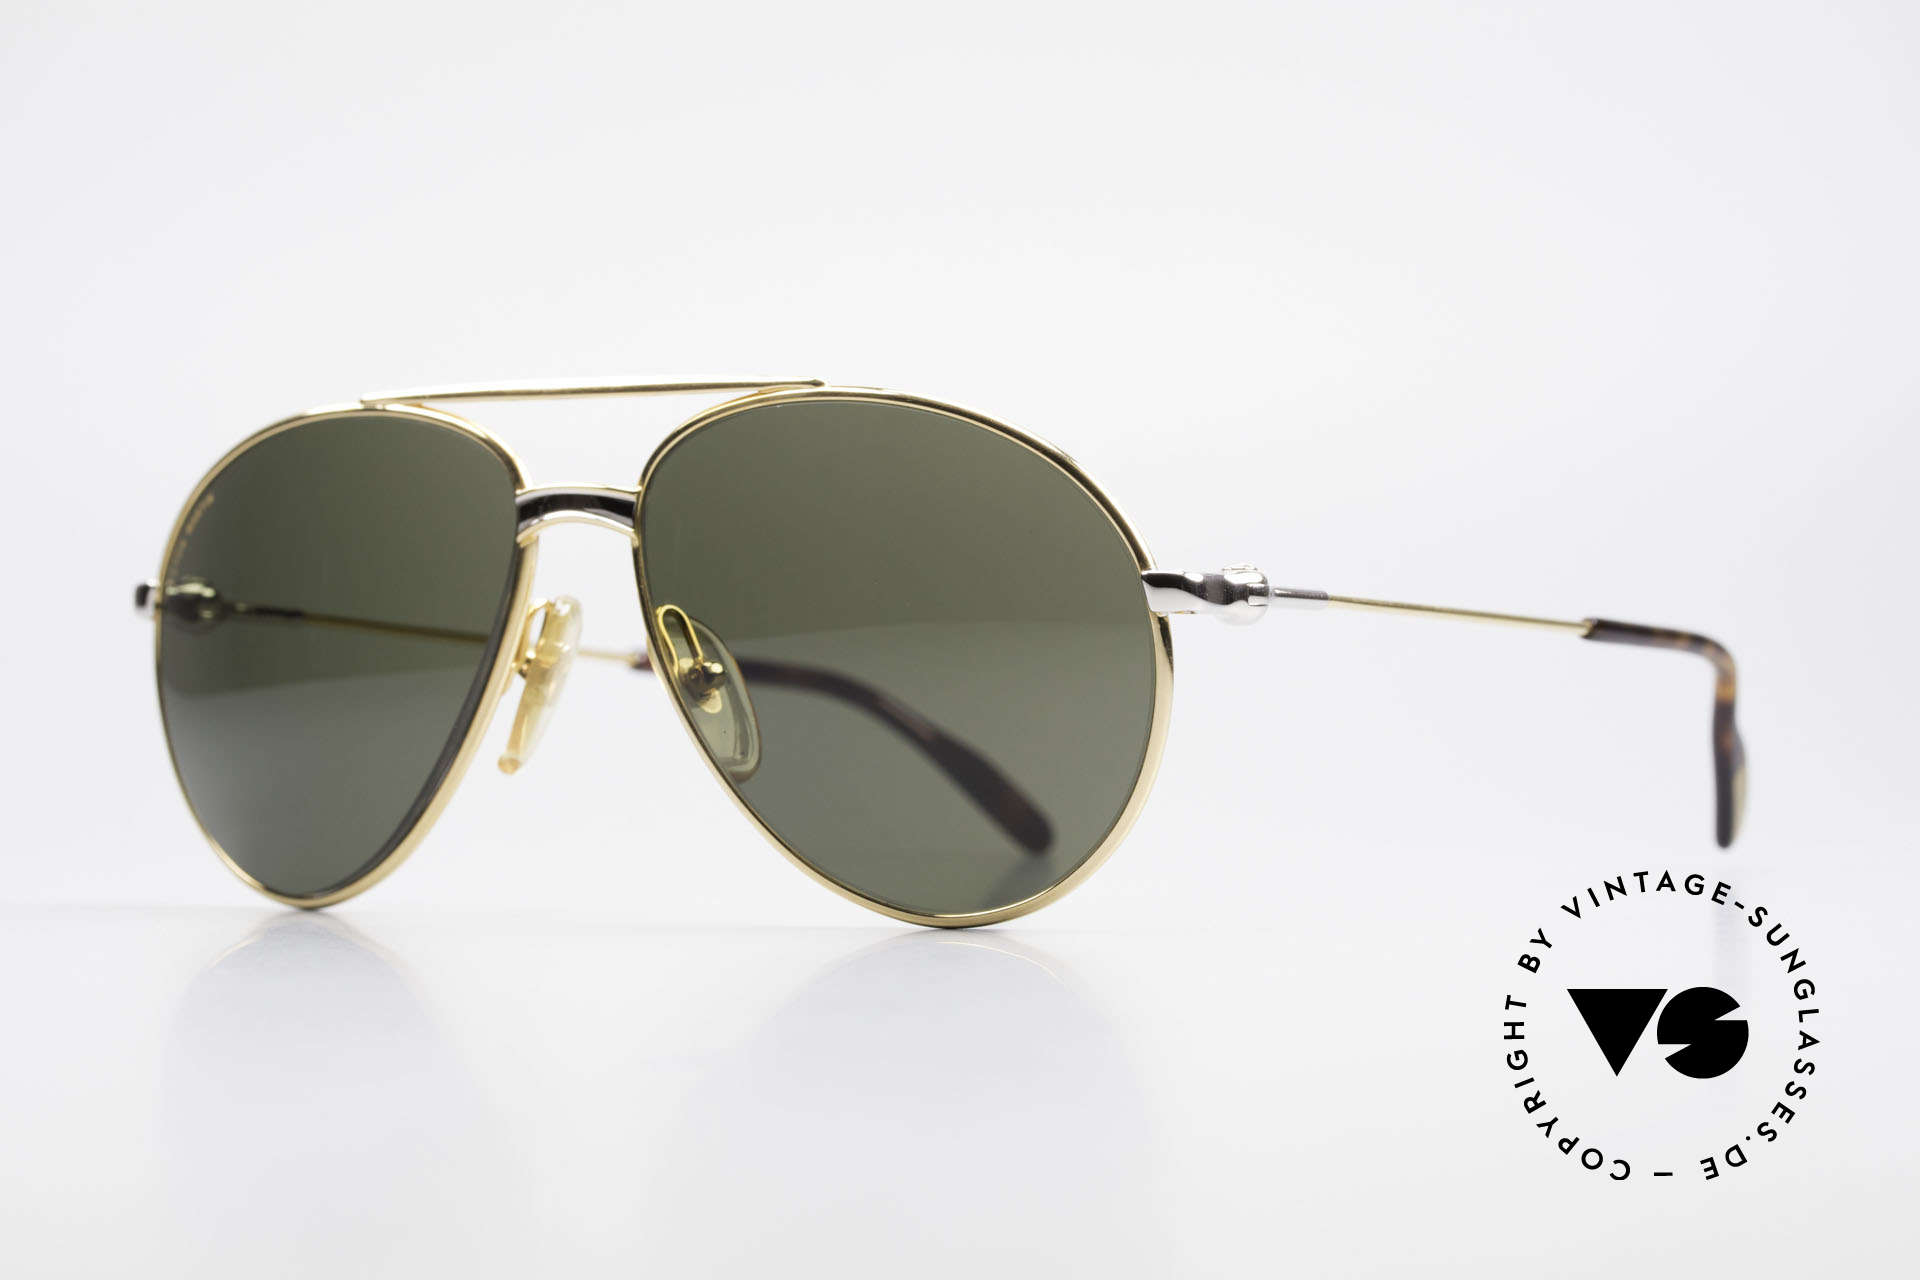 Aston Martin AM02 Aviator Shades James Bond Style, sporty & elegant classic: James Bond 'gentlemen style', Made for Men